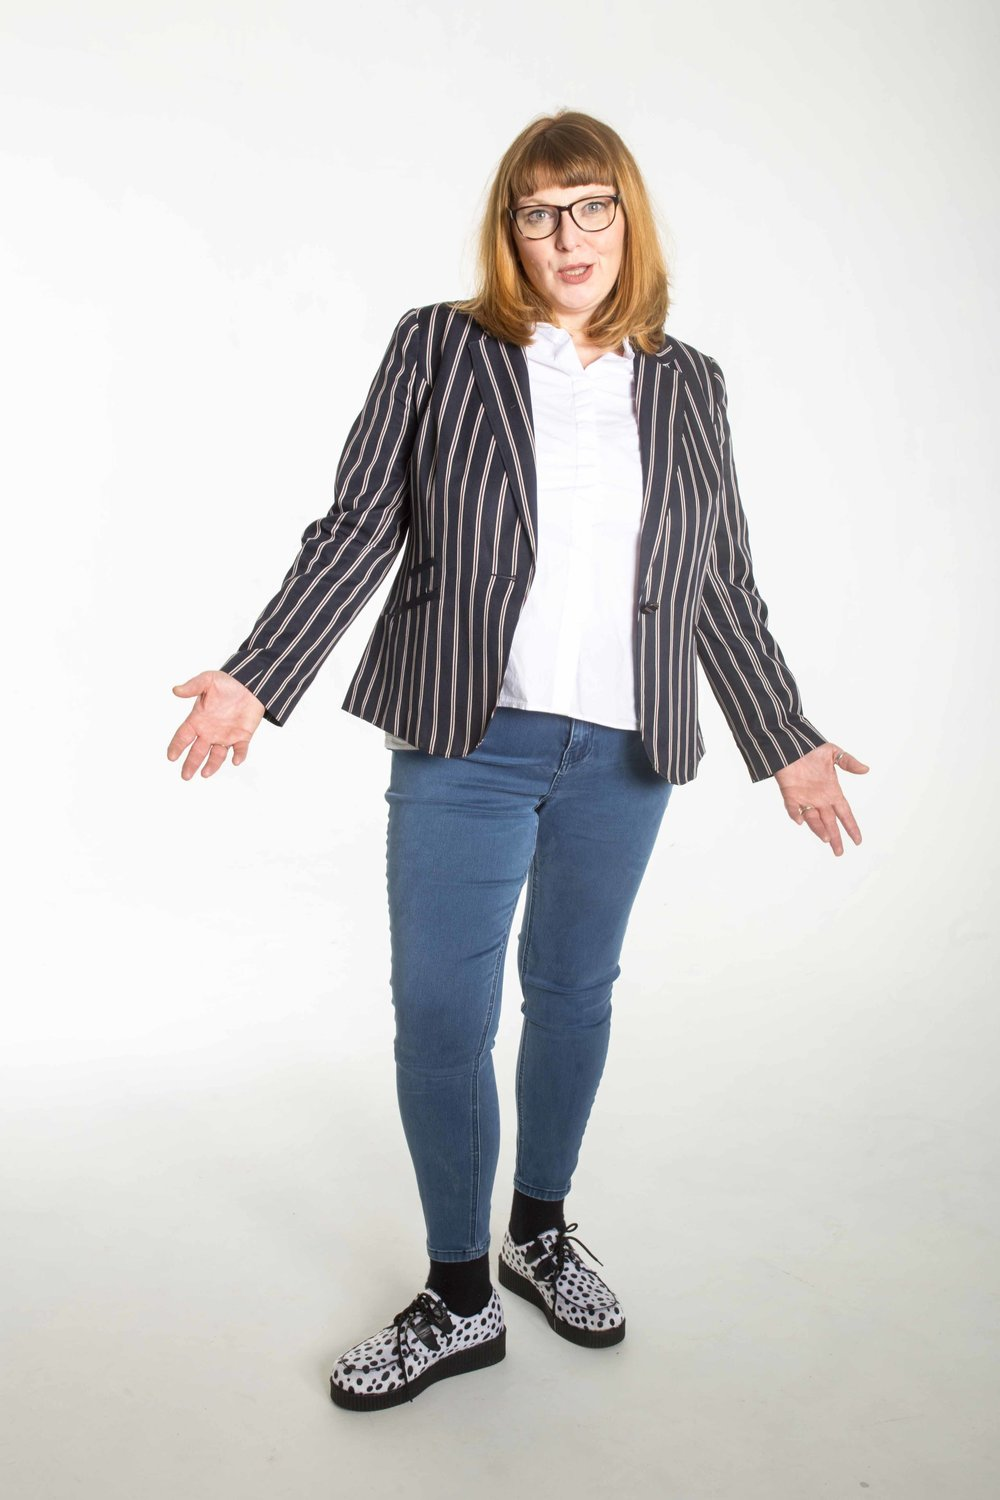 NINA GILLIGAN Award-winning comedian Nina Gilligan exploded on to the comedy scene in 2011and is now a regular on the UK circuit performing at clubs and venues all over the UK. She was a finalist in English Comedian of the Year 2016.